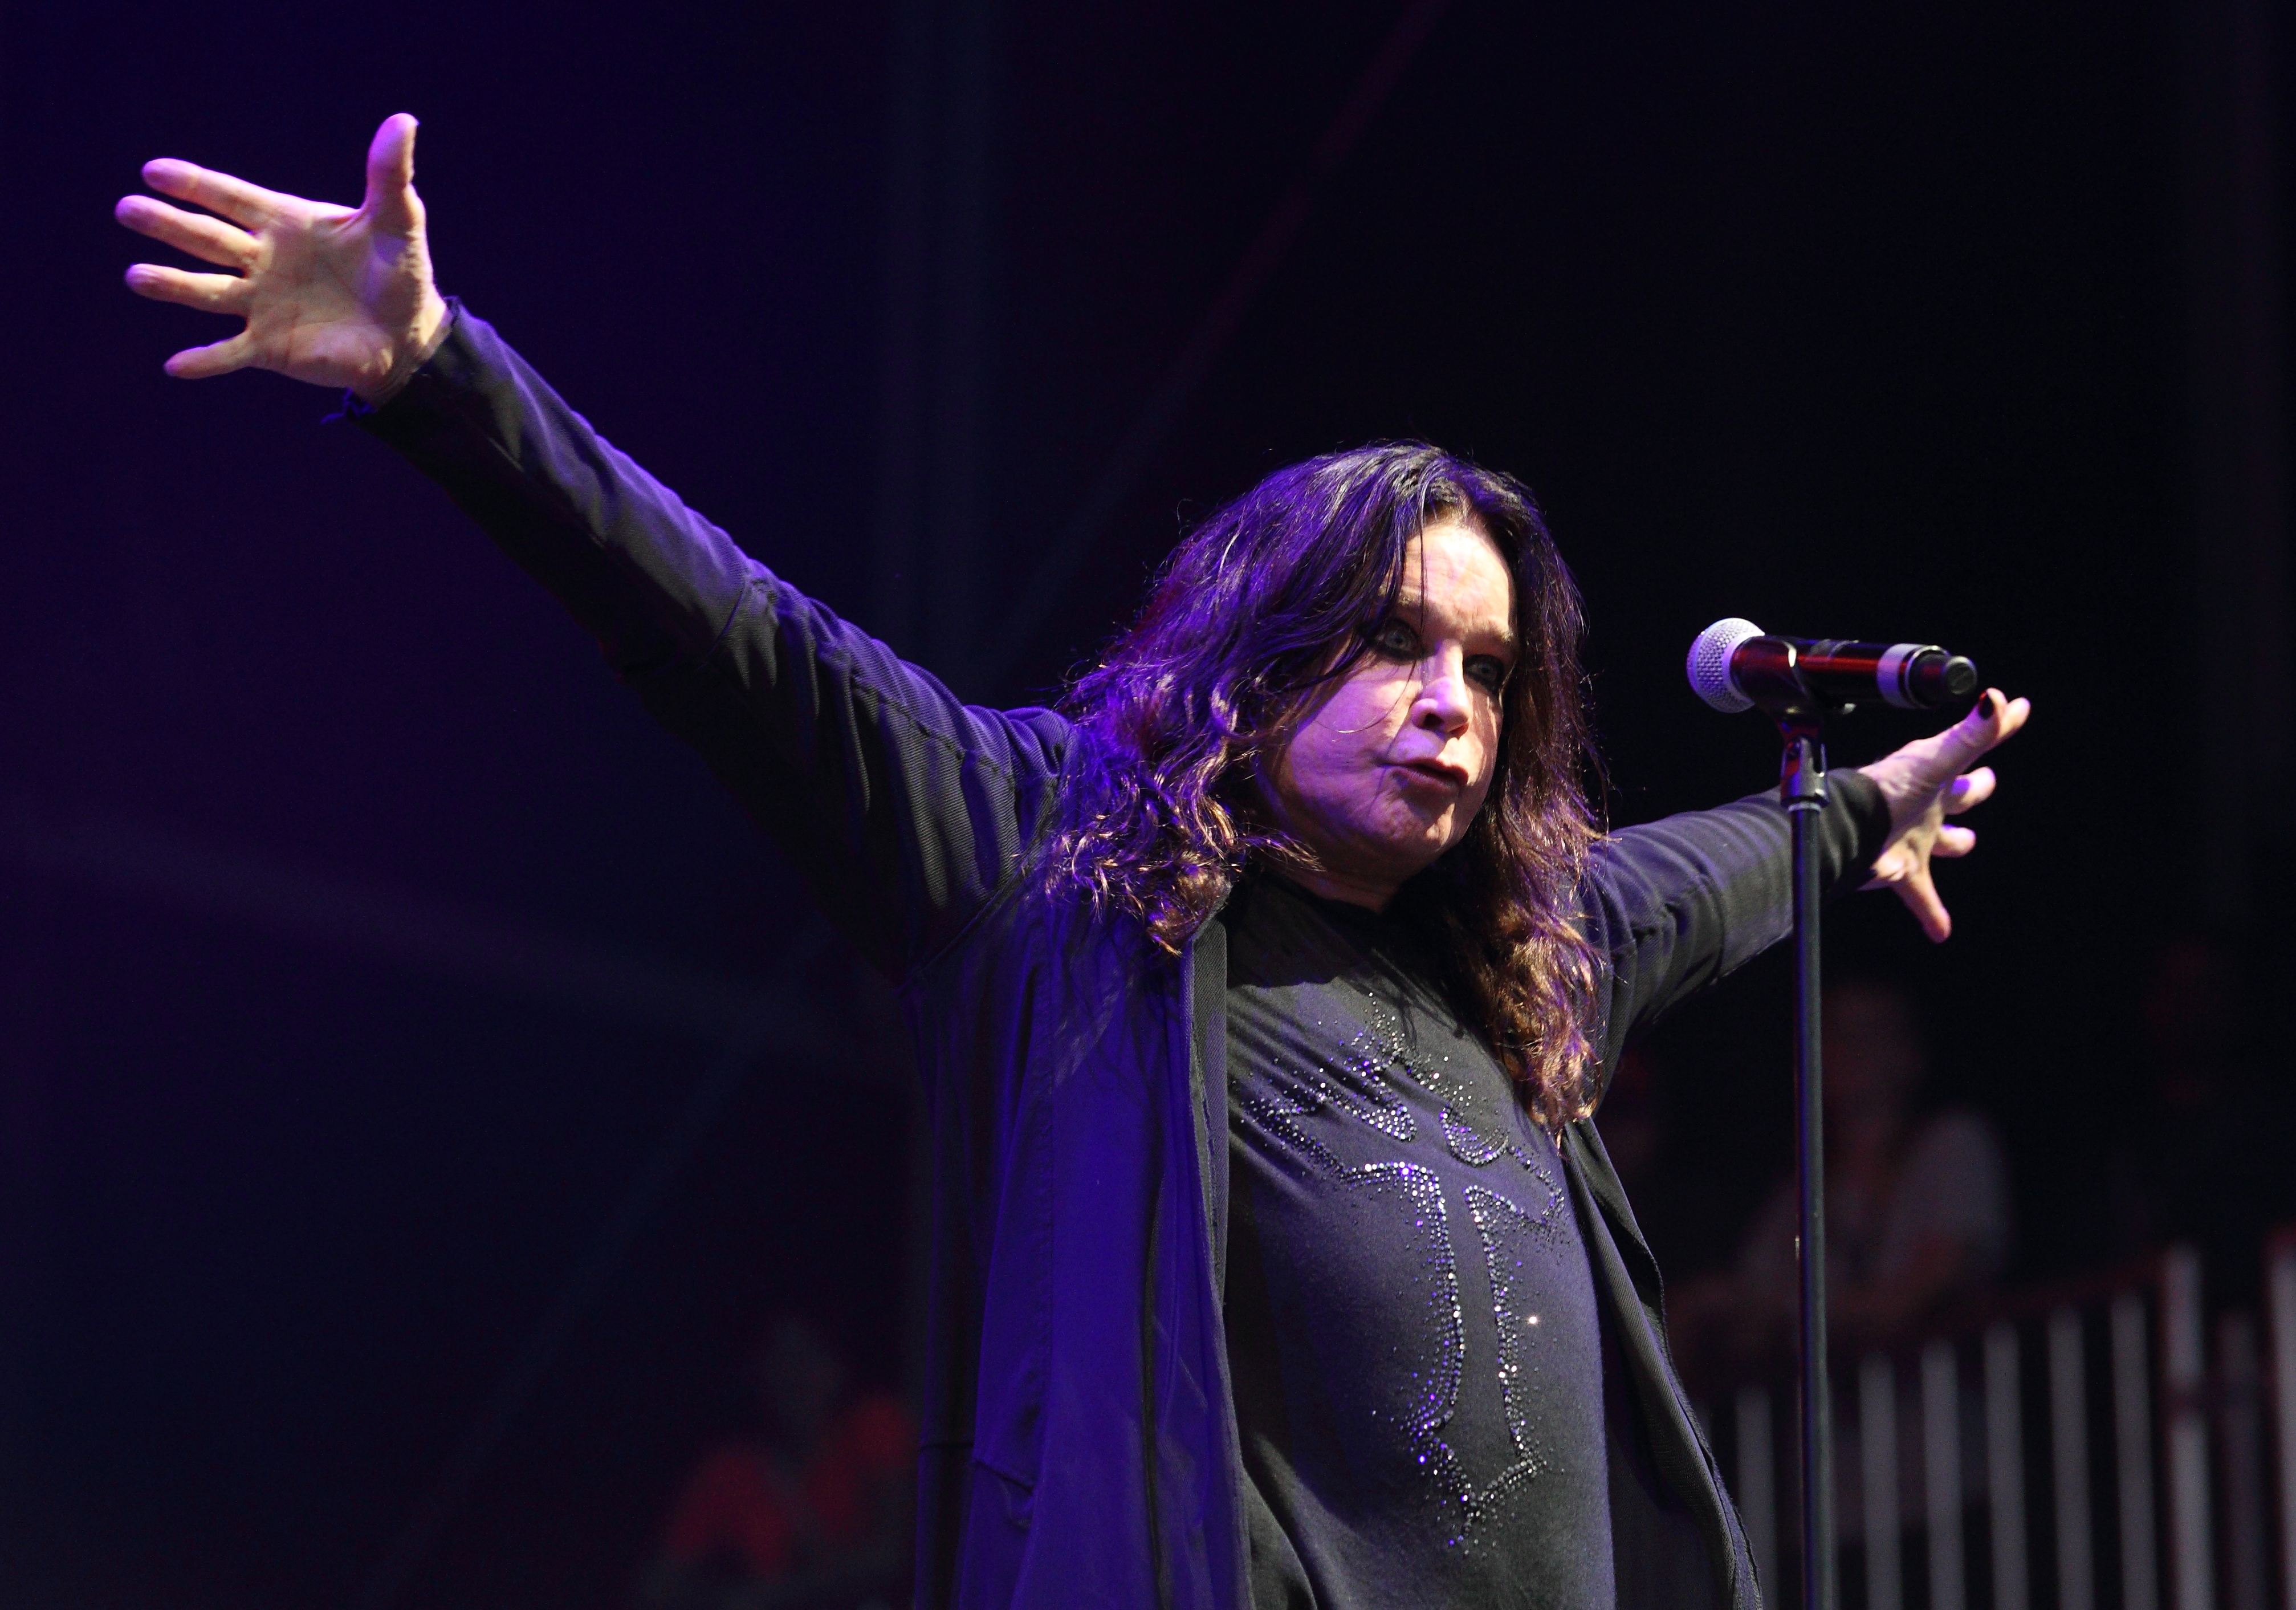 This Aug. 3, 2012 file photo shows Ozzy Osbourne of Black Sabbath performing at the Lollapalooza festival in Chicago's Grant Park